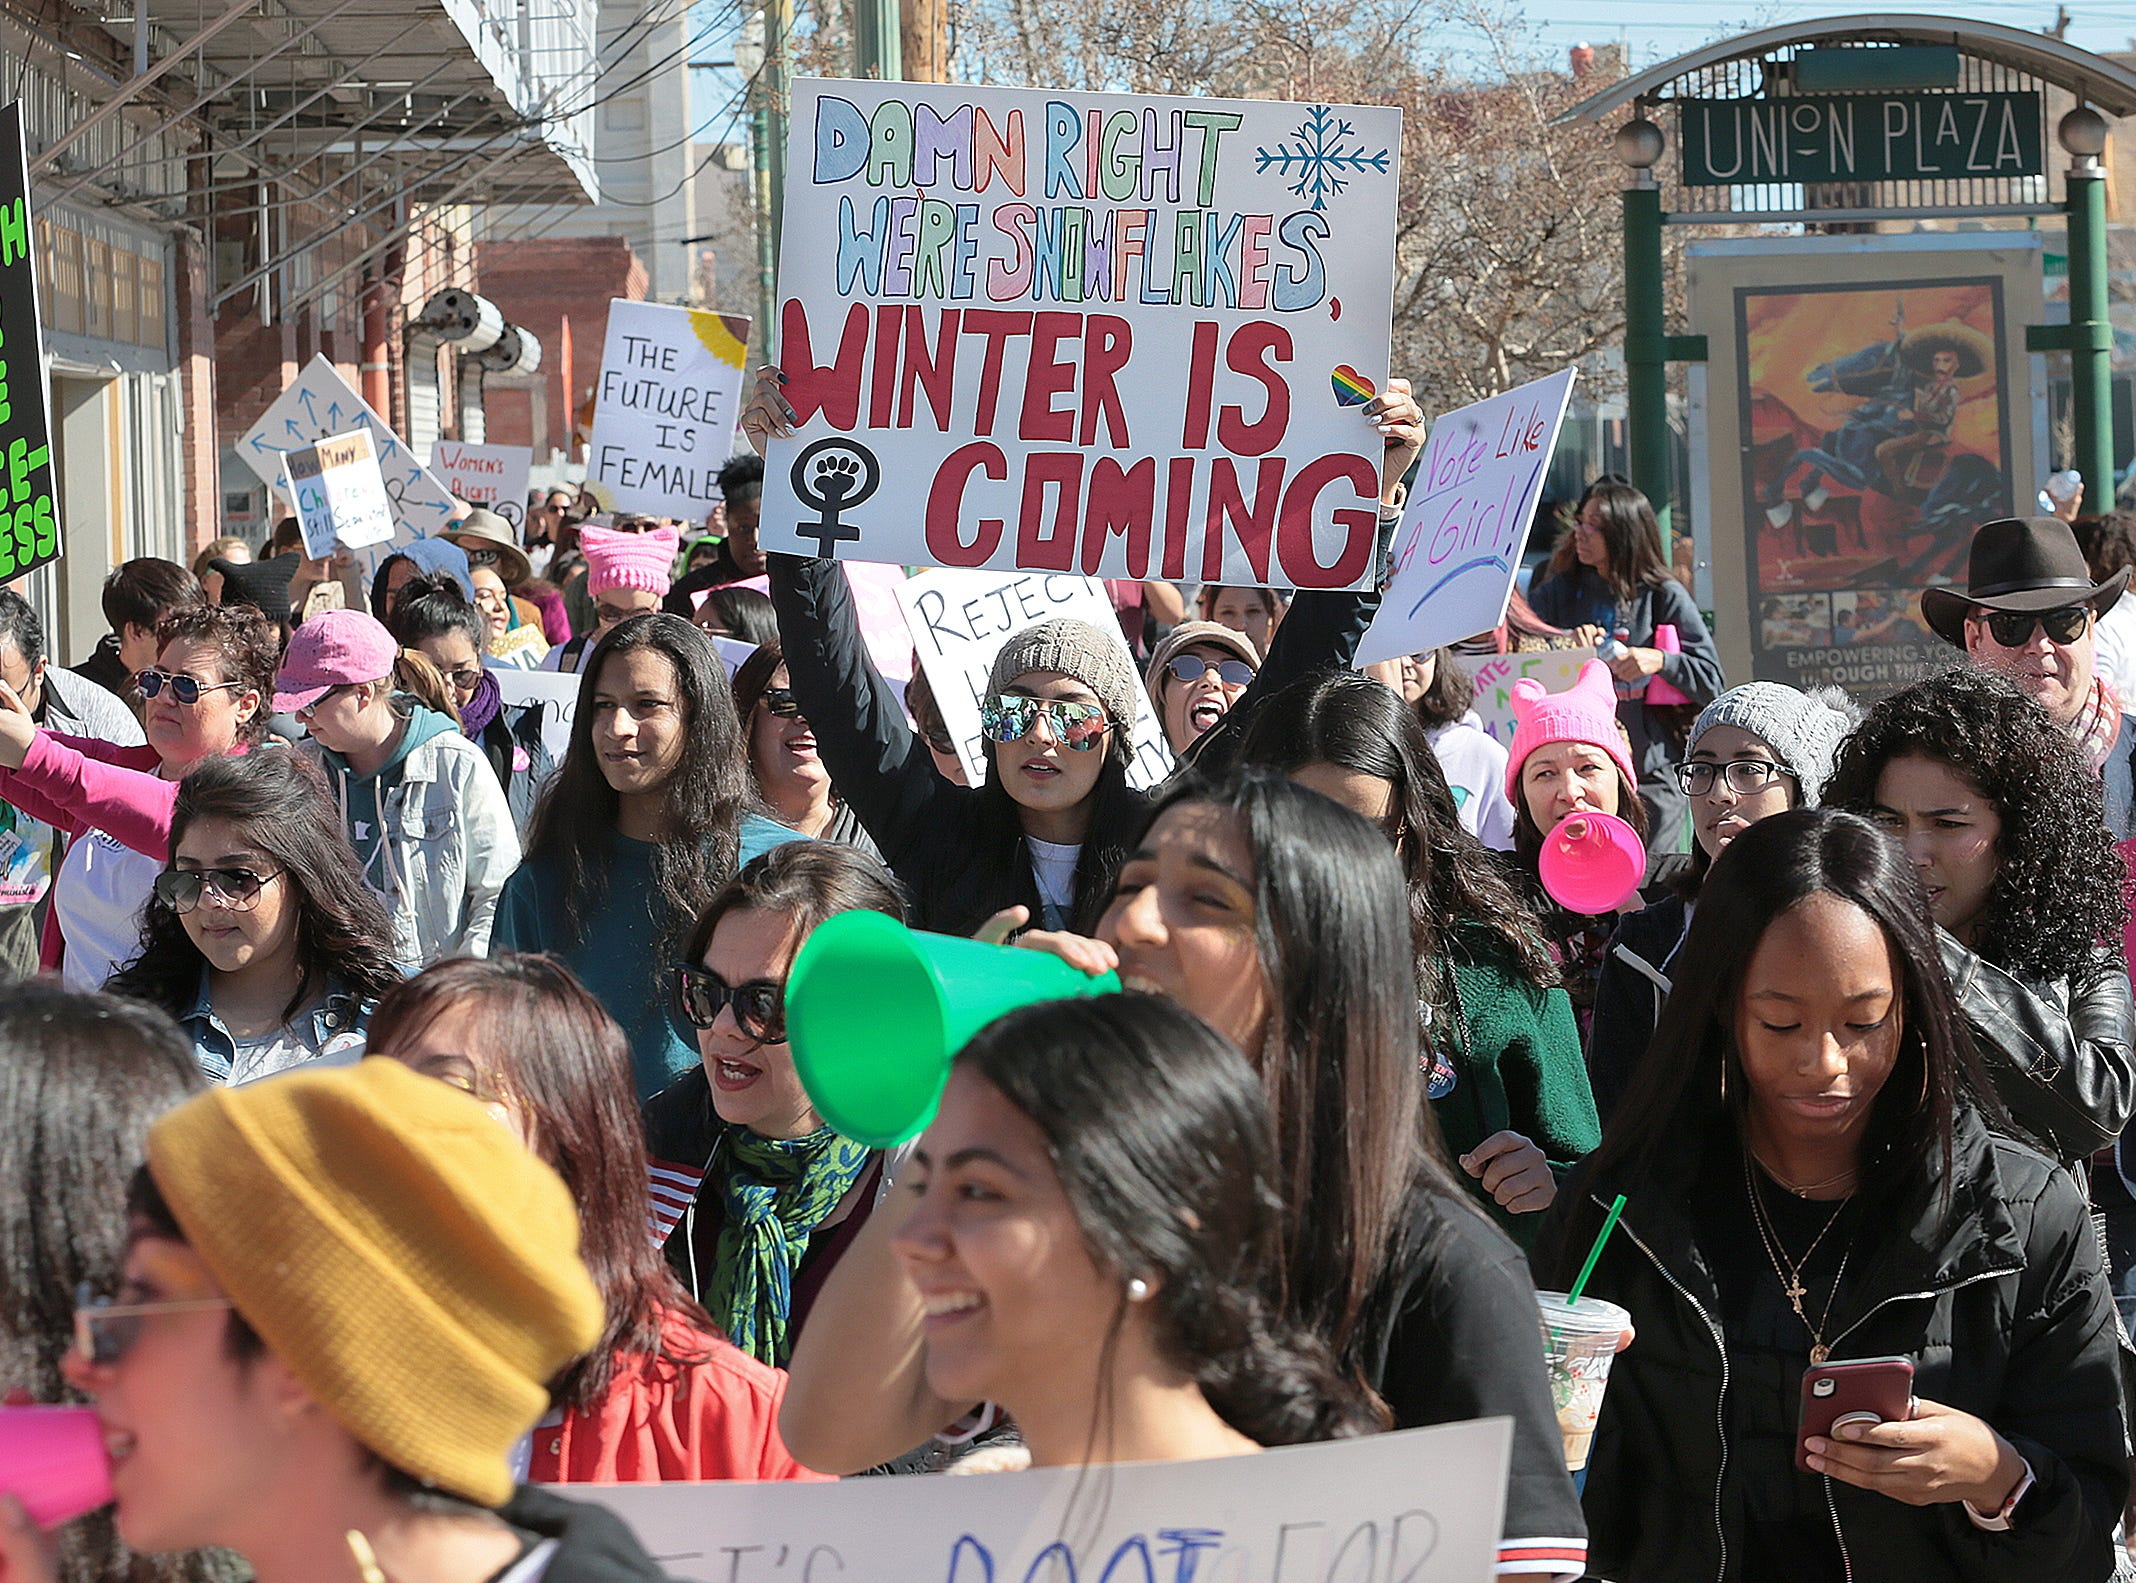 The El Paso Women's march makes its way through Union Plaza Saturday before returning to San Jacinto Plaza where a rally was held.